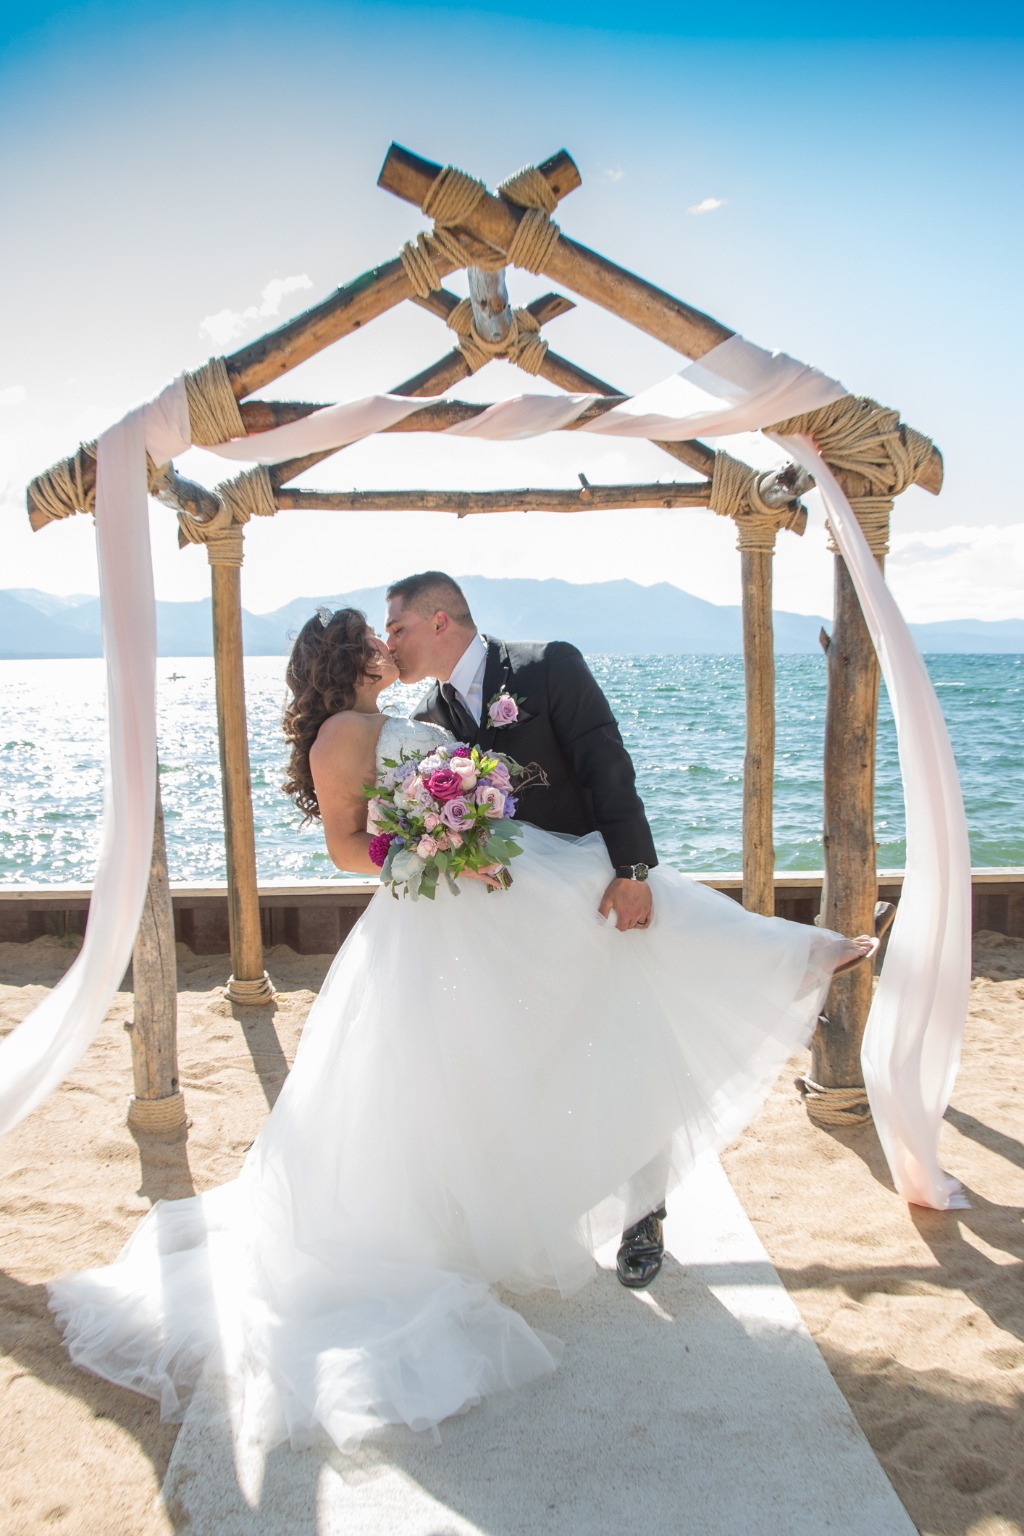 Is it any wonder why I love what I do? Romance, a striking couple, sparkling blue water, a gorgeous wedding at the lake, or the park